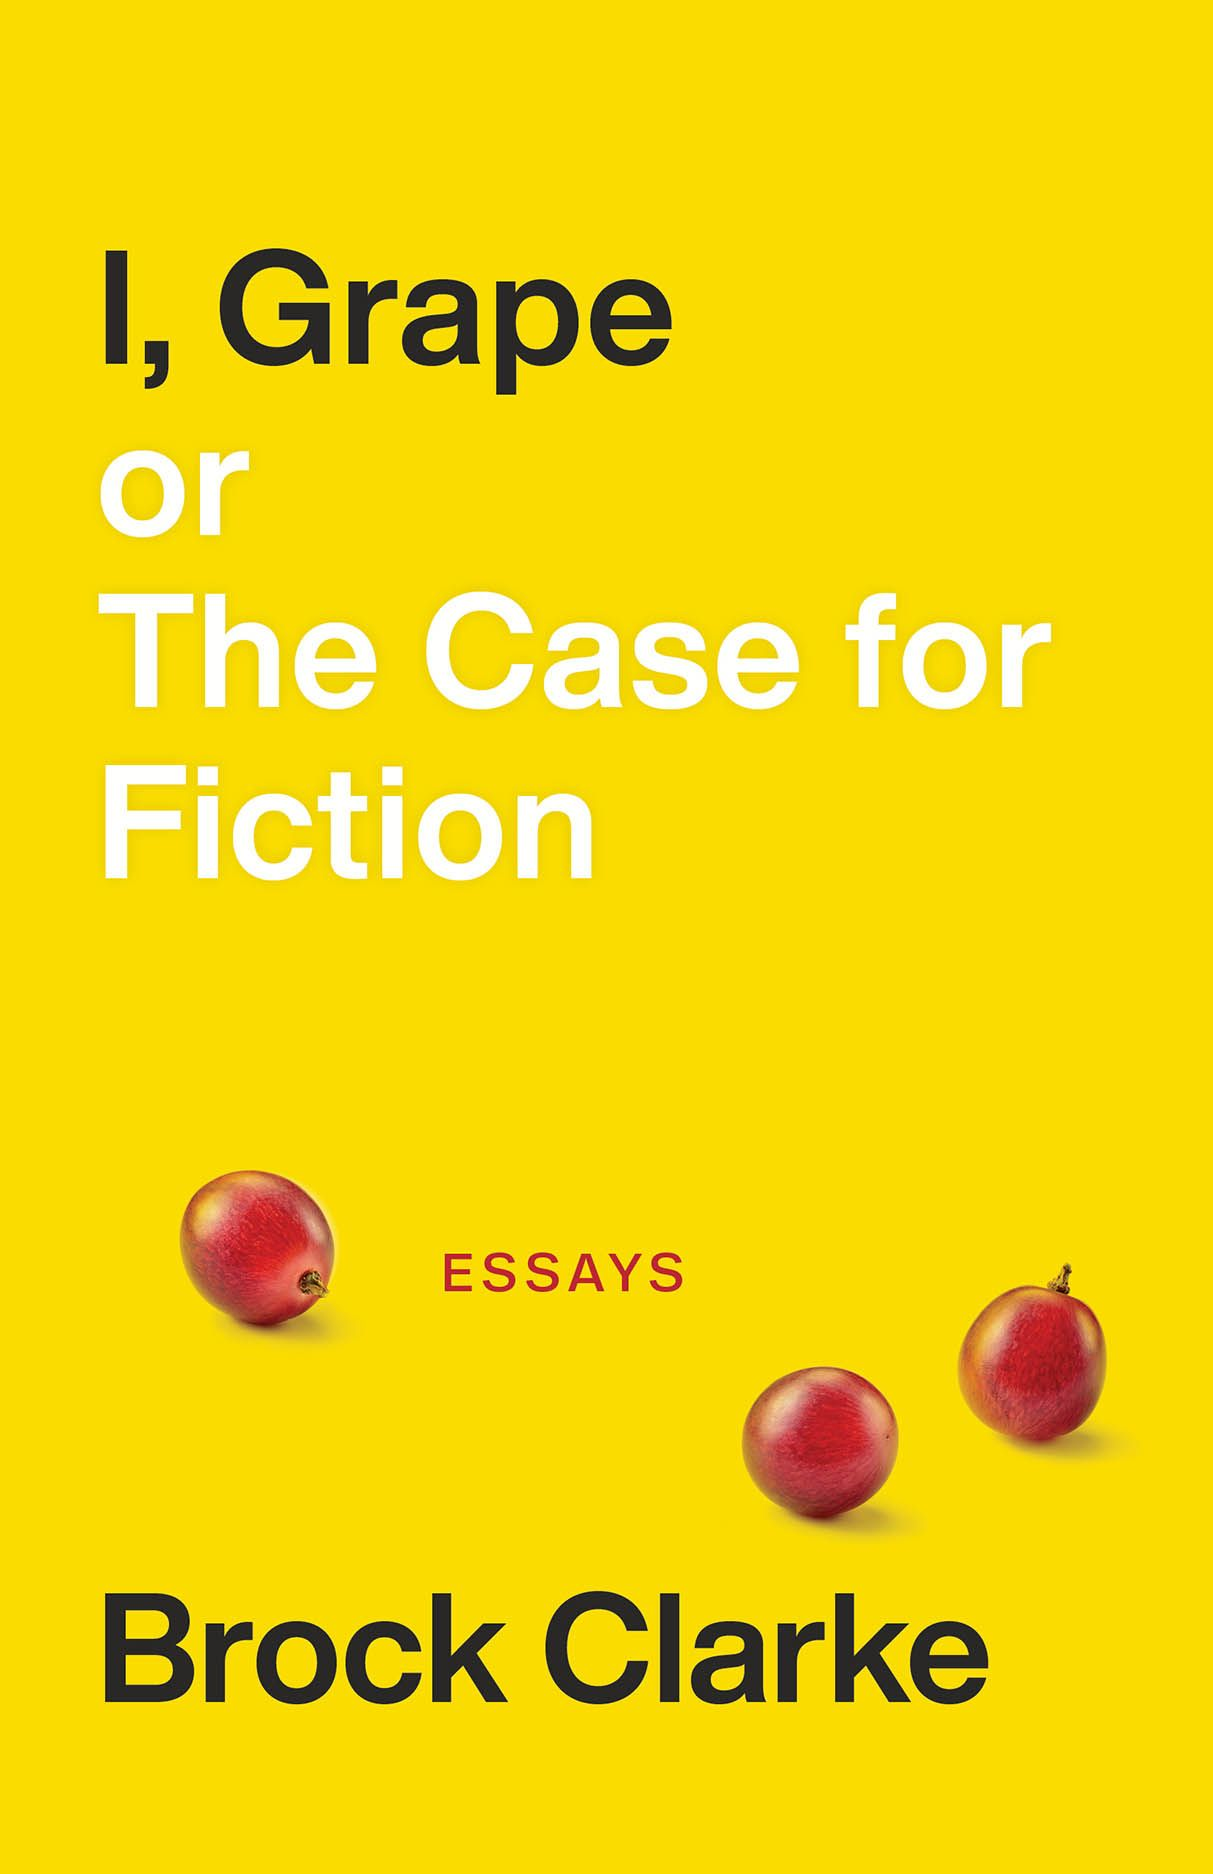 I, Grape; or The Case for Fiction: Essays